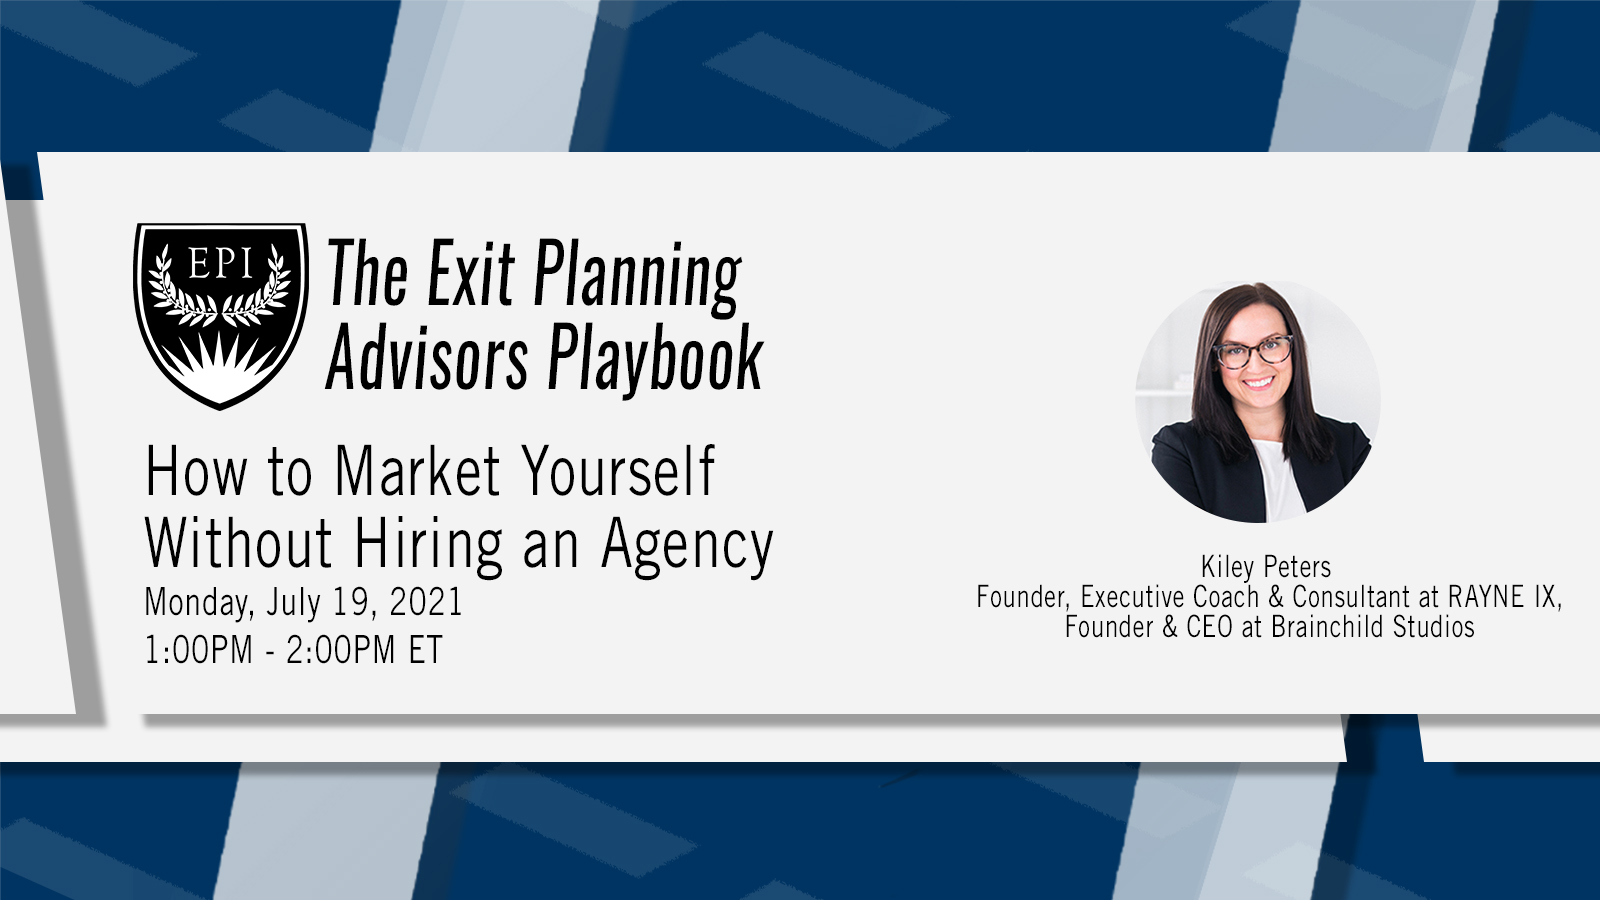 How to Market Yourself Without Hiring an Agency